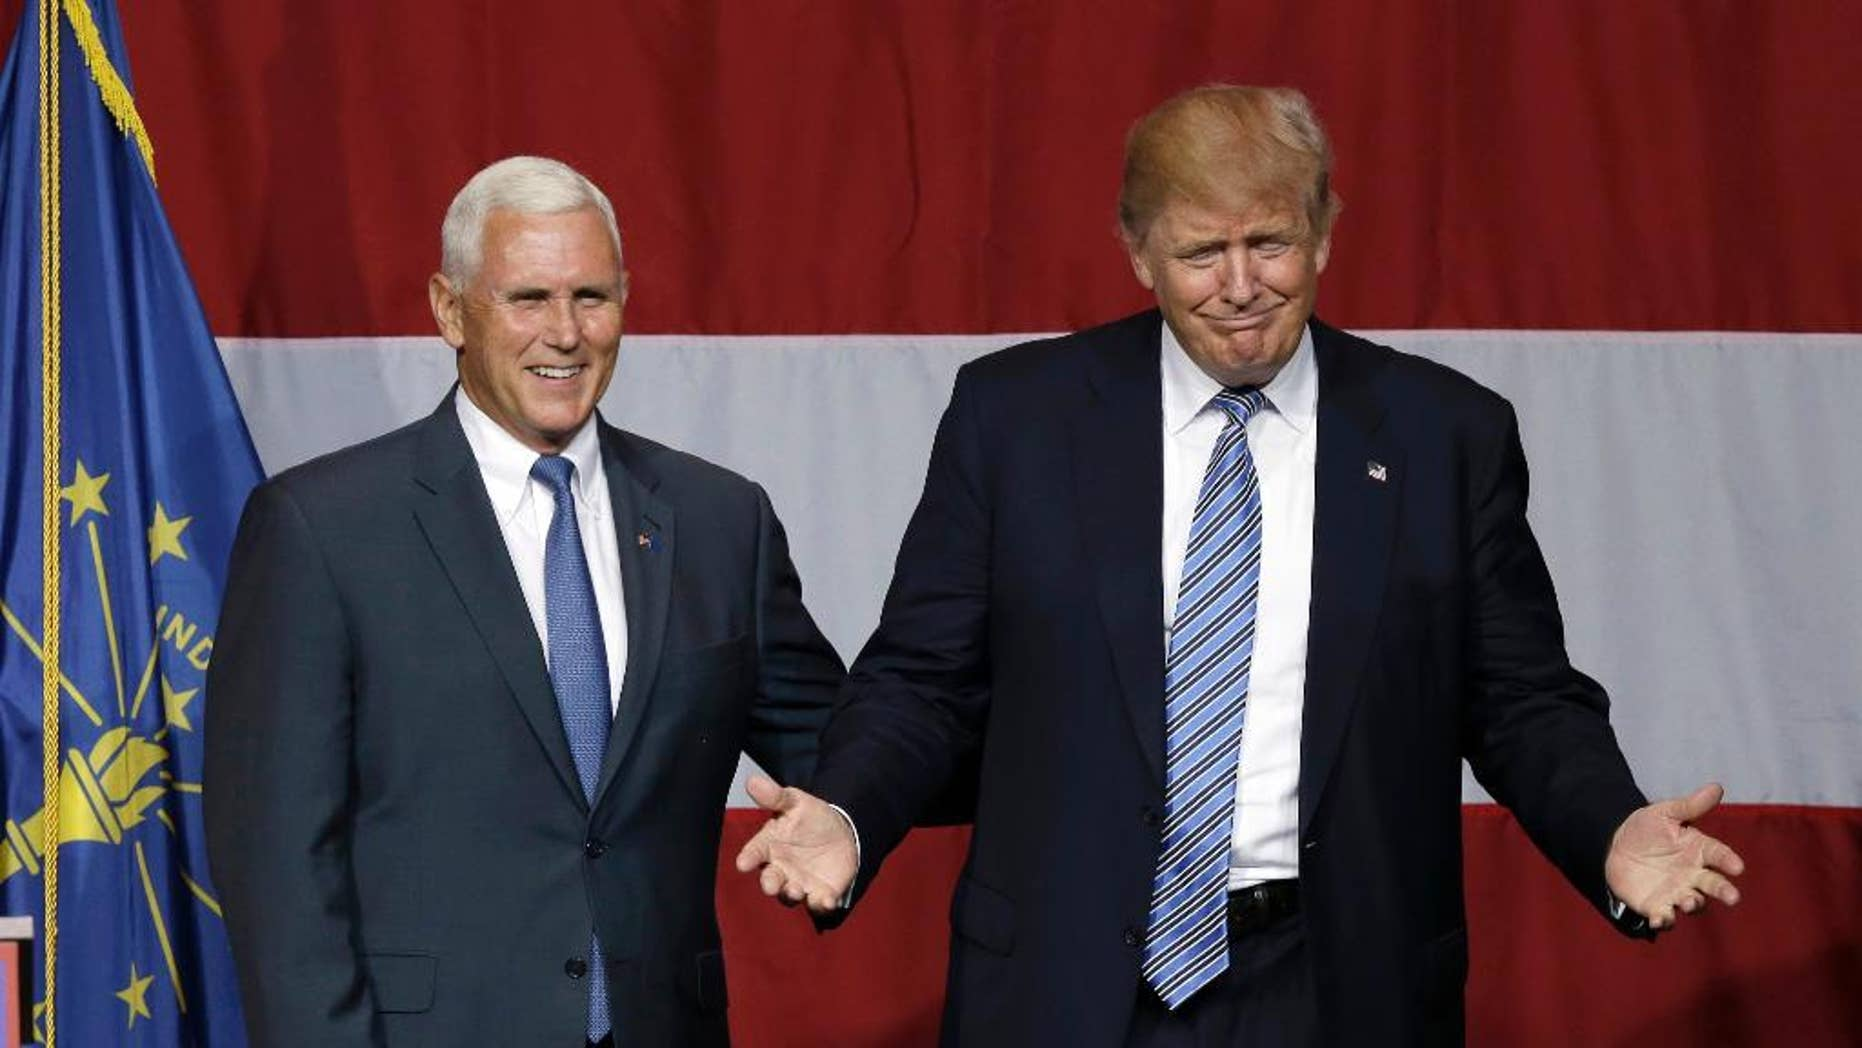 FILE - In this July 12, 2016 file photo, Indiana Gov. Mike Pence joins Republican presidential candidate Donald Trump at a rally in Westfield, Ind. Over the past two decades, Trump has disagreed with his vice-presidential pick on plenty of political issues, including immigration policy, entitlement programs and trade. On social issues above all, Trump and Pence arrive at the 2016 general election from very different paths.  (AP Photo/Michael Conroy, File)